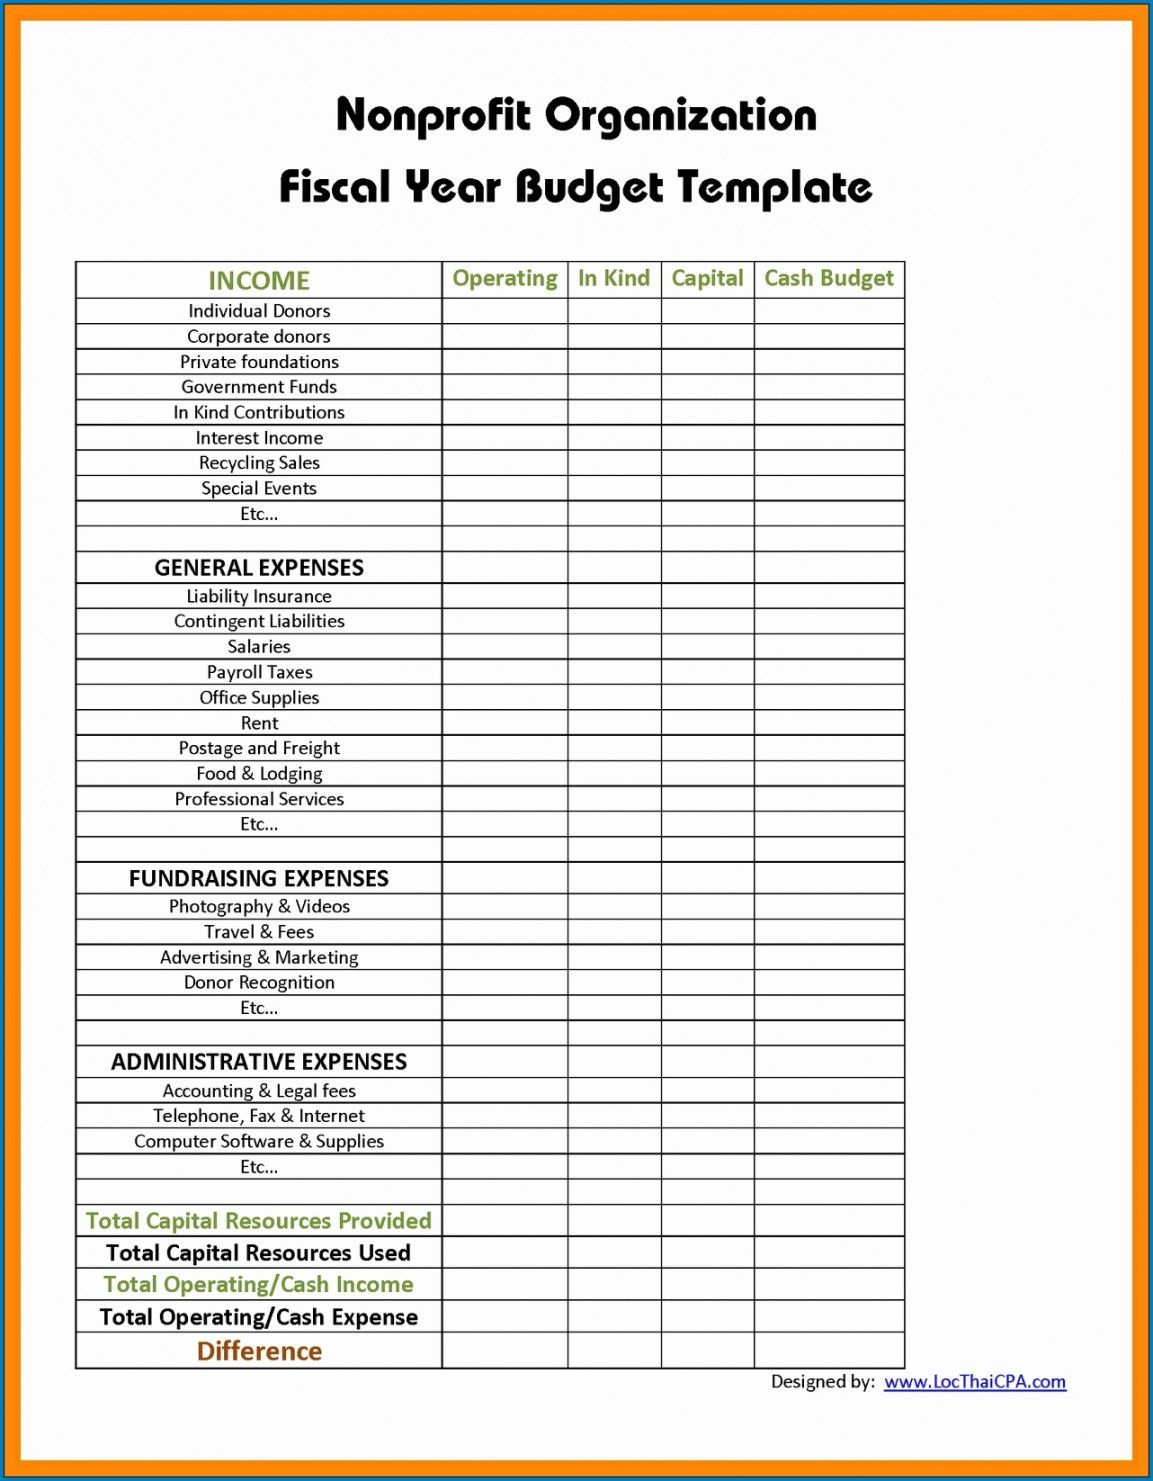 Get Our Example Of Small Nonprofit Budget Template In